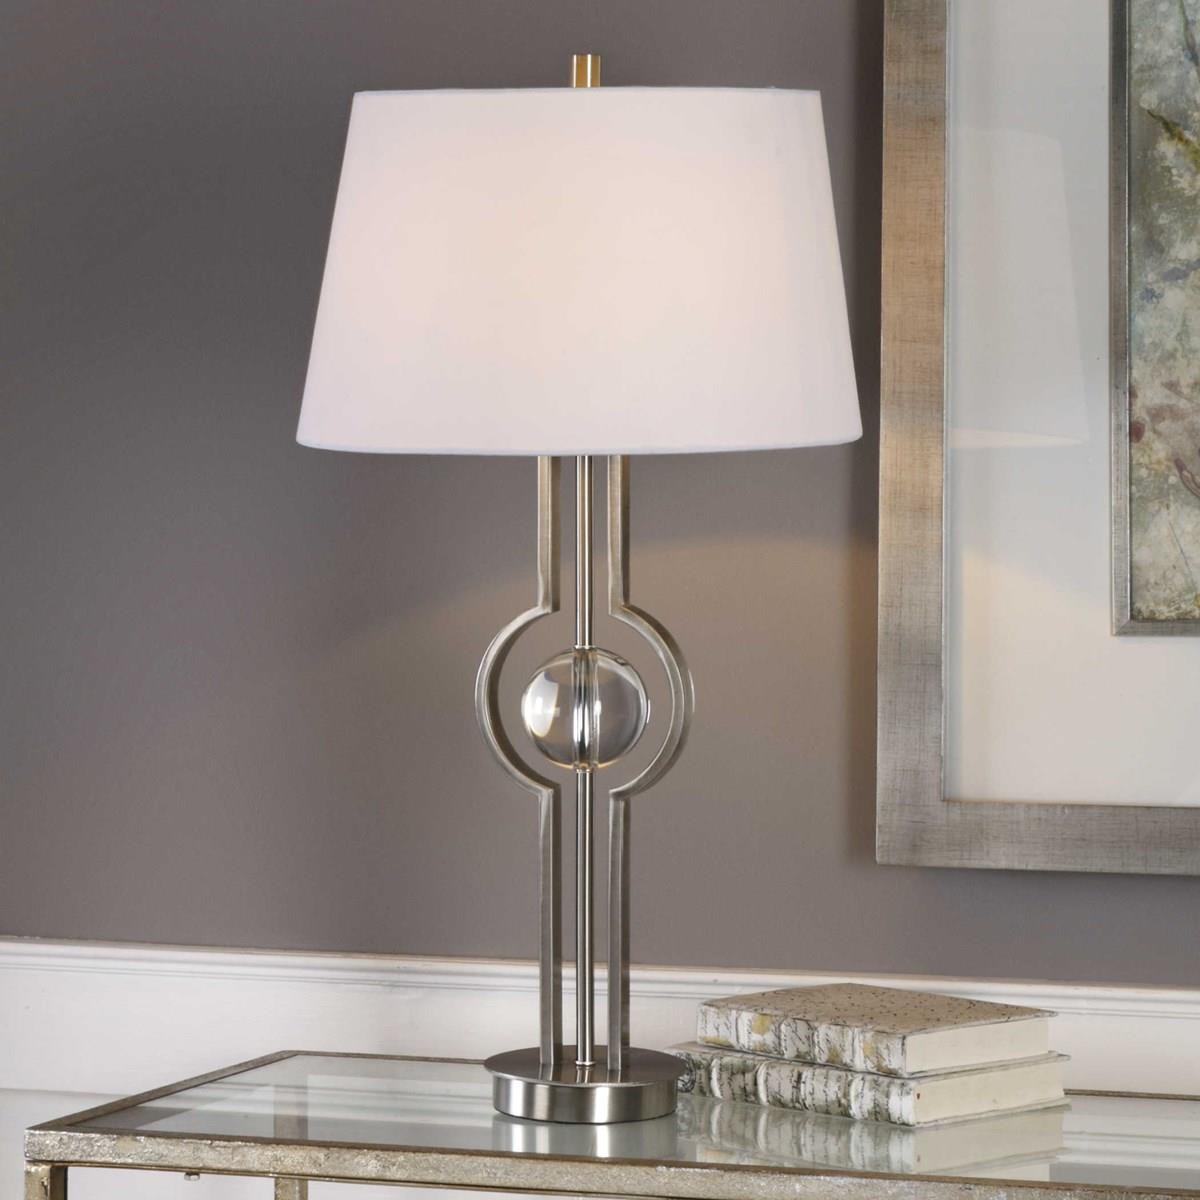 Table Lamps JULIA TABLE LAMP by Unique at Walker's Furniture